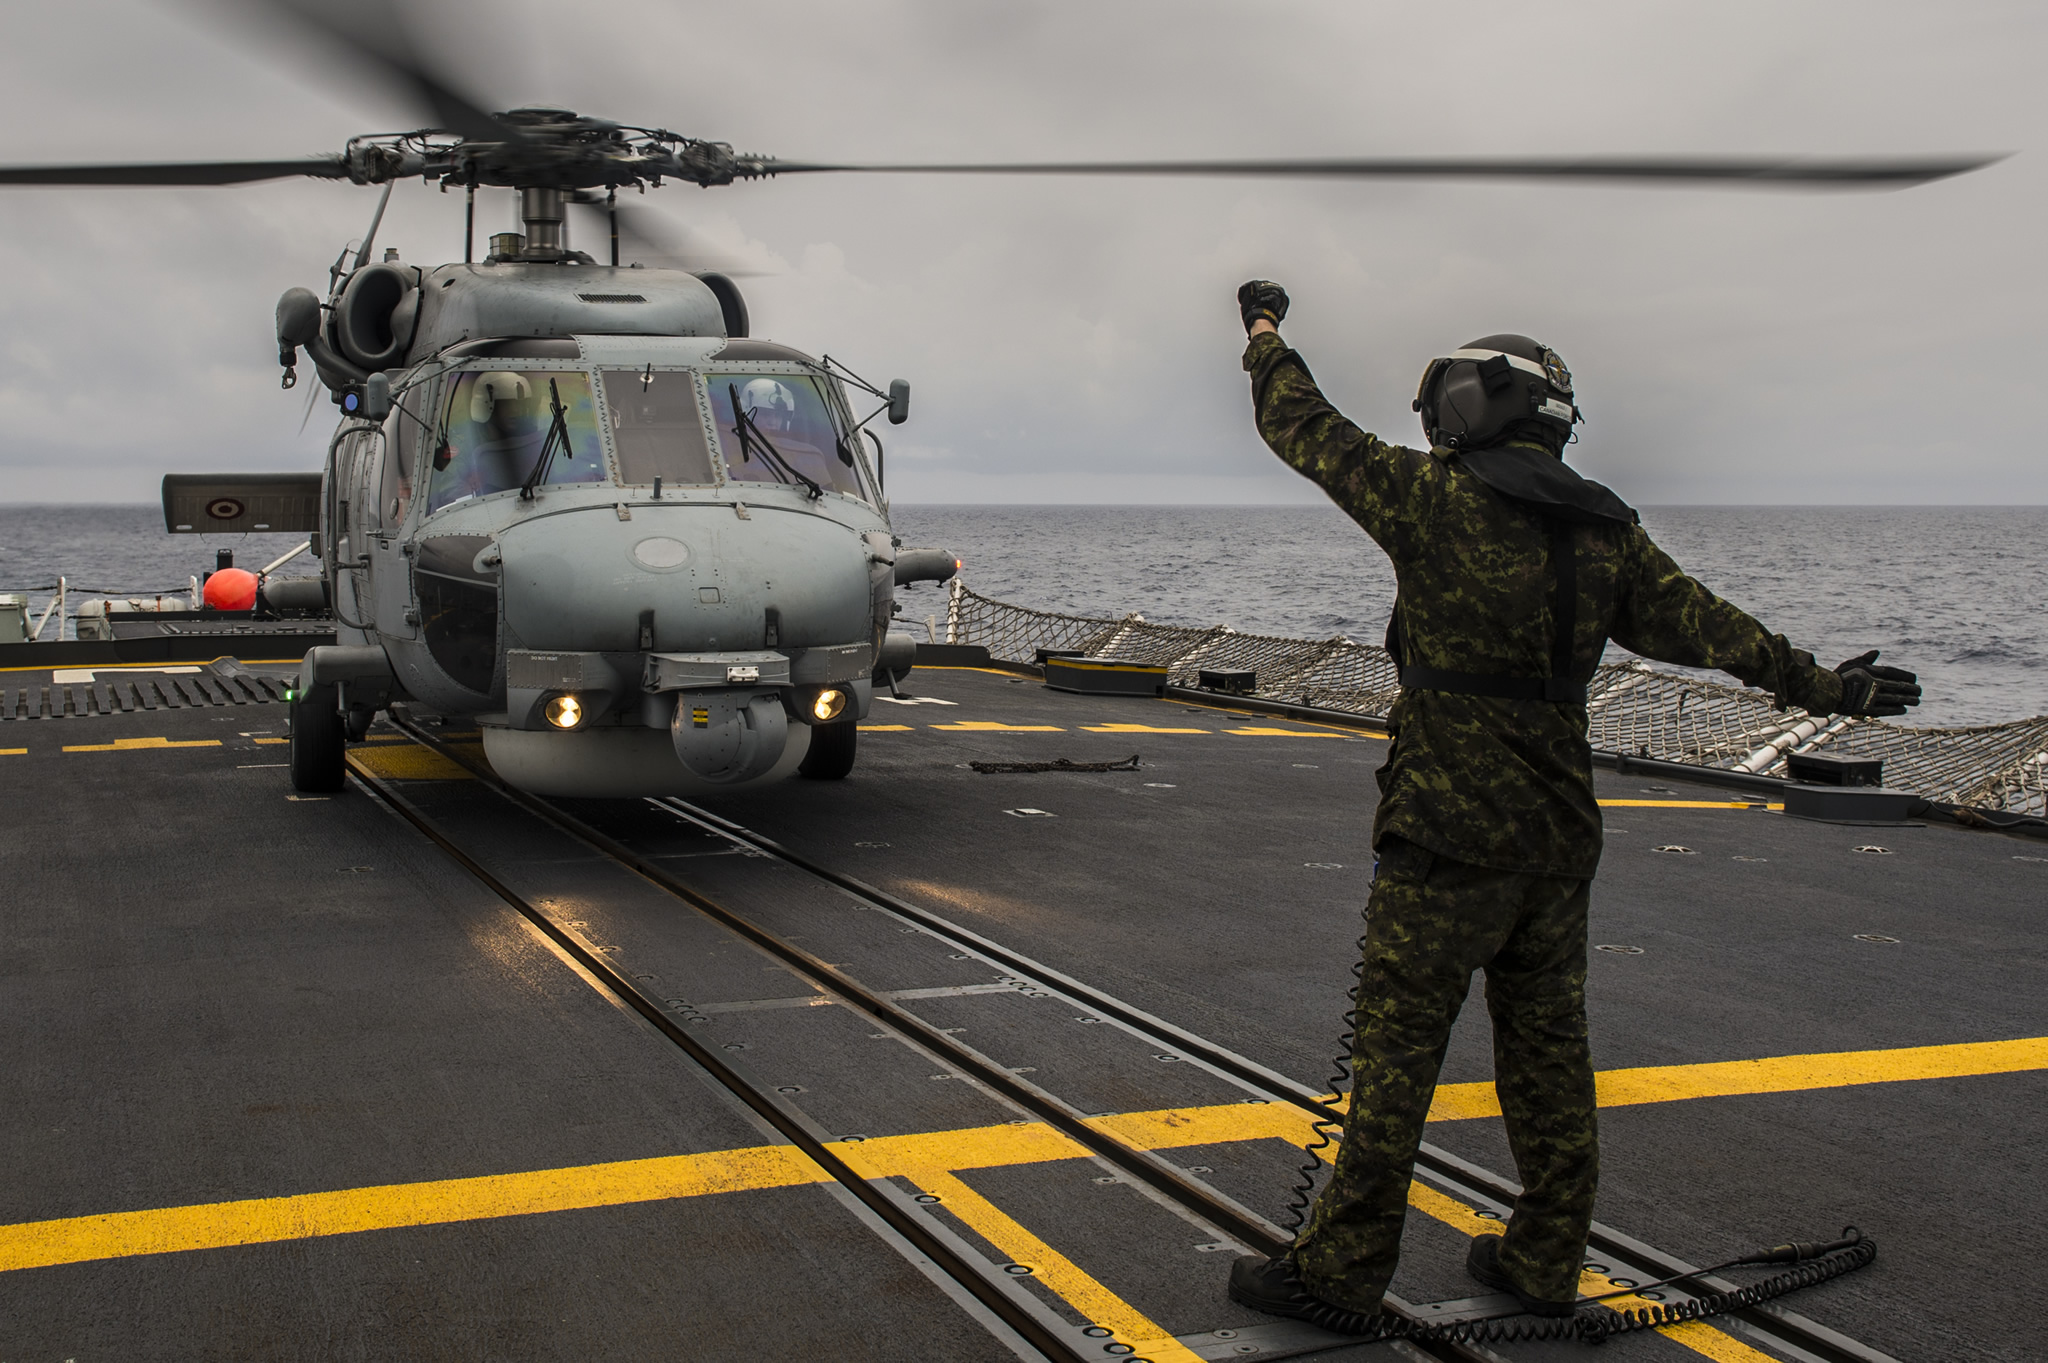 A person holds their arms in the air in front of a helicopter on a ship